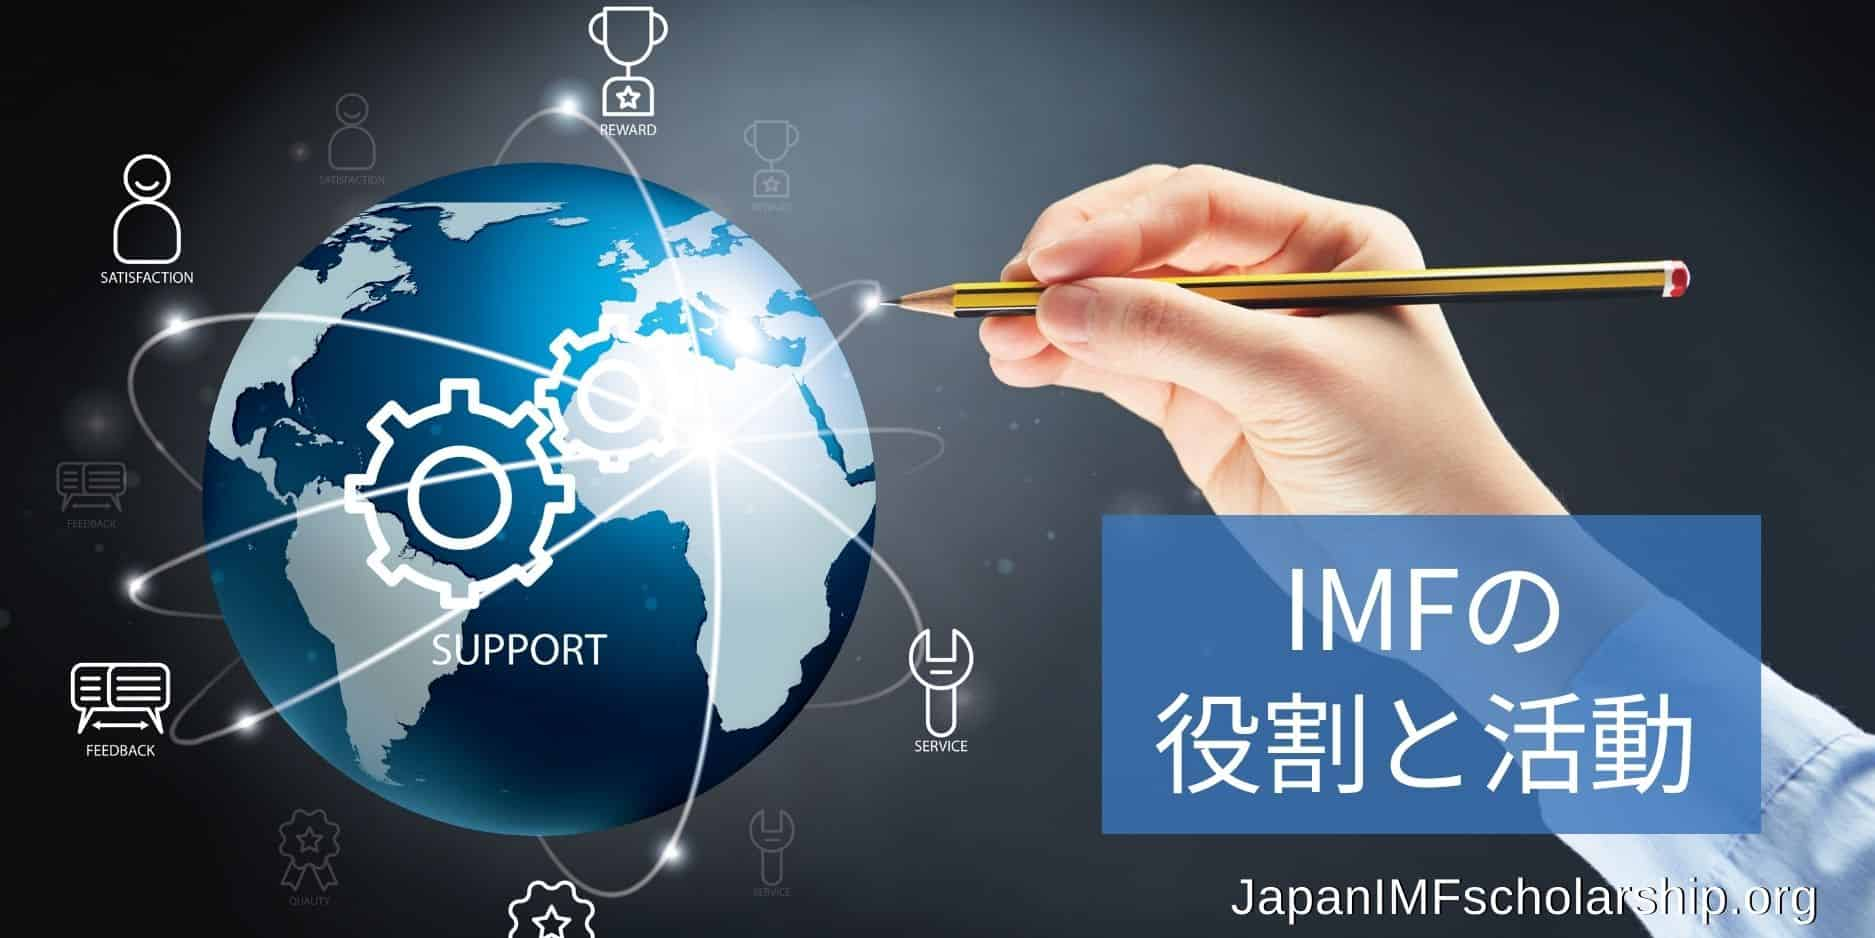 jisp web-fb what imf is and how imf works